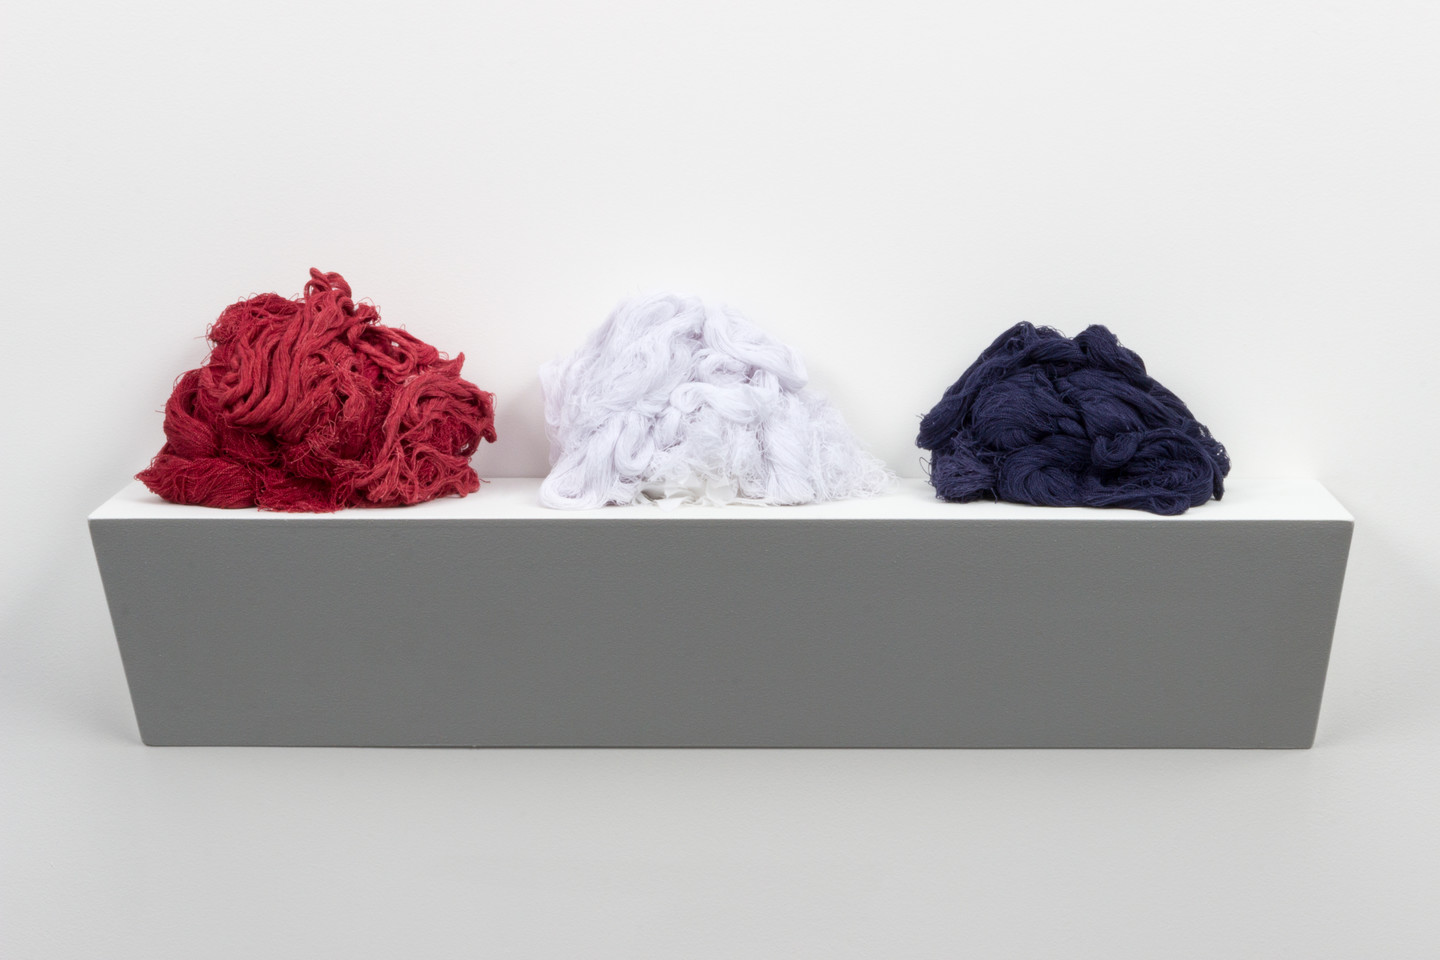 Three piles of thread from an unravelled American Confederate Battle Flag on a white base resembling a shelf. The thread piles are red, white, and blue.